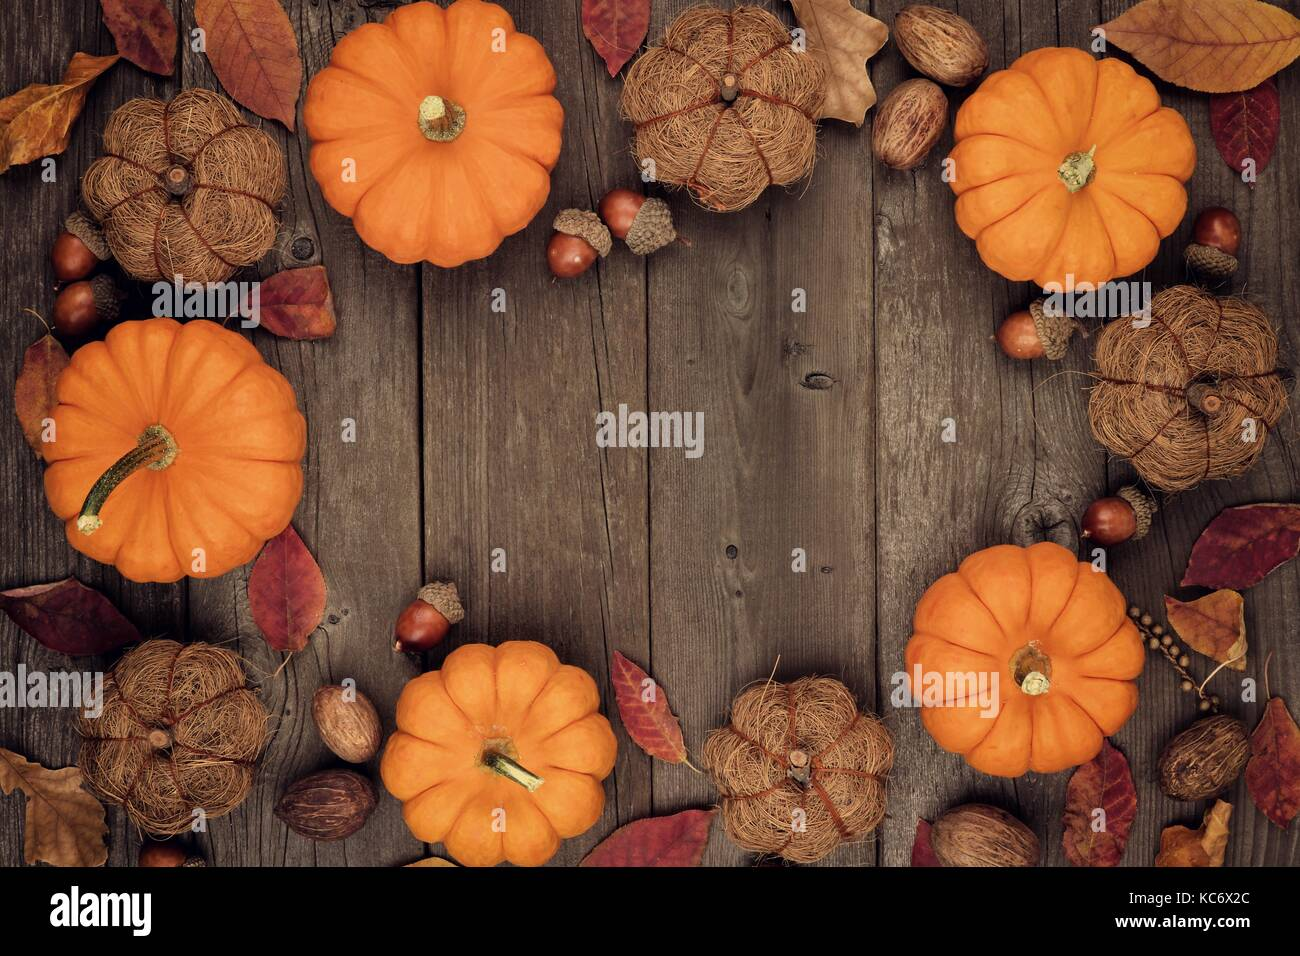 Autumn Frame Of Pumpkins Leaves Nuts And Rustic Decor On An Aged Wood Background